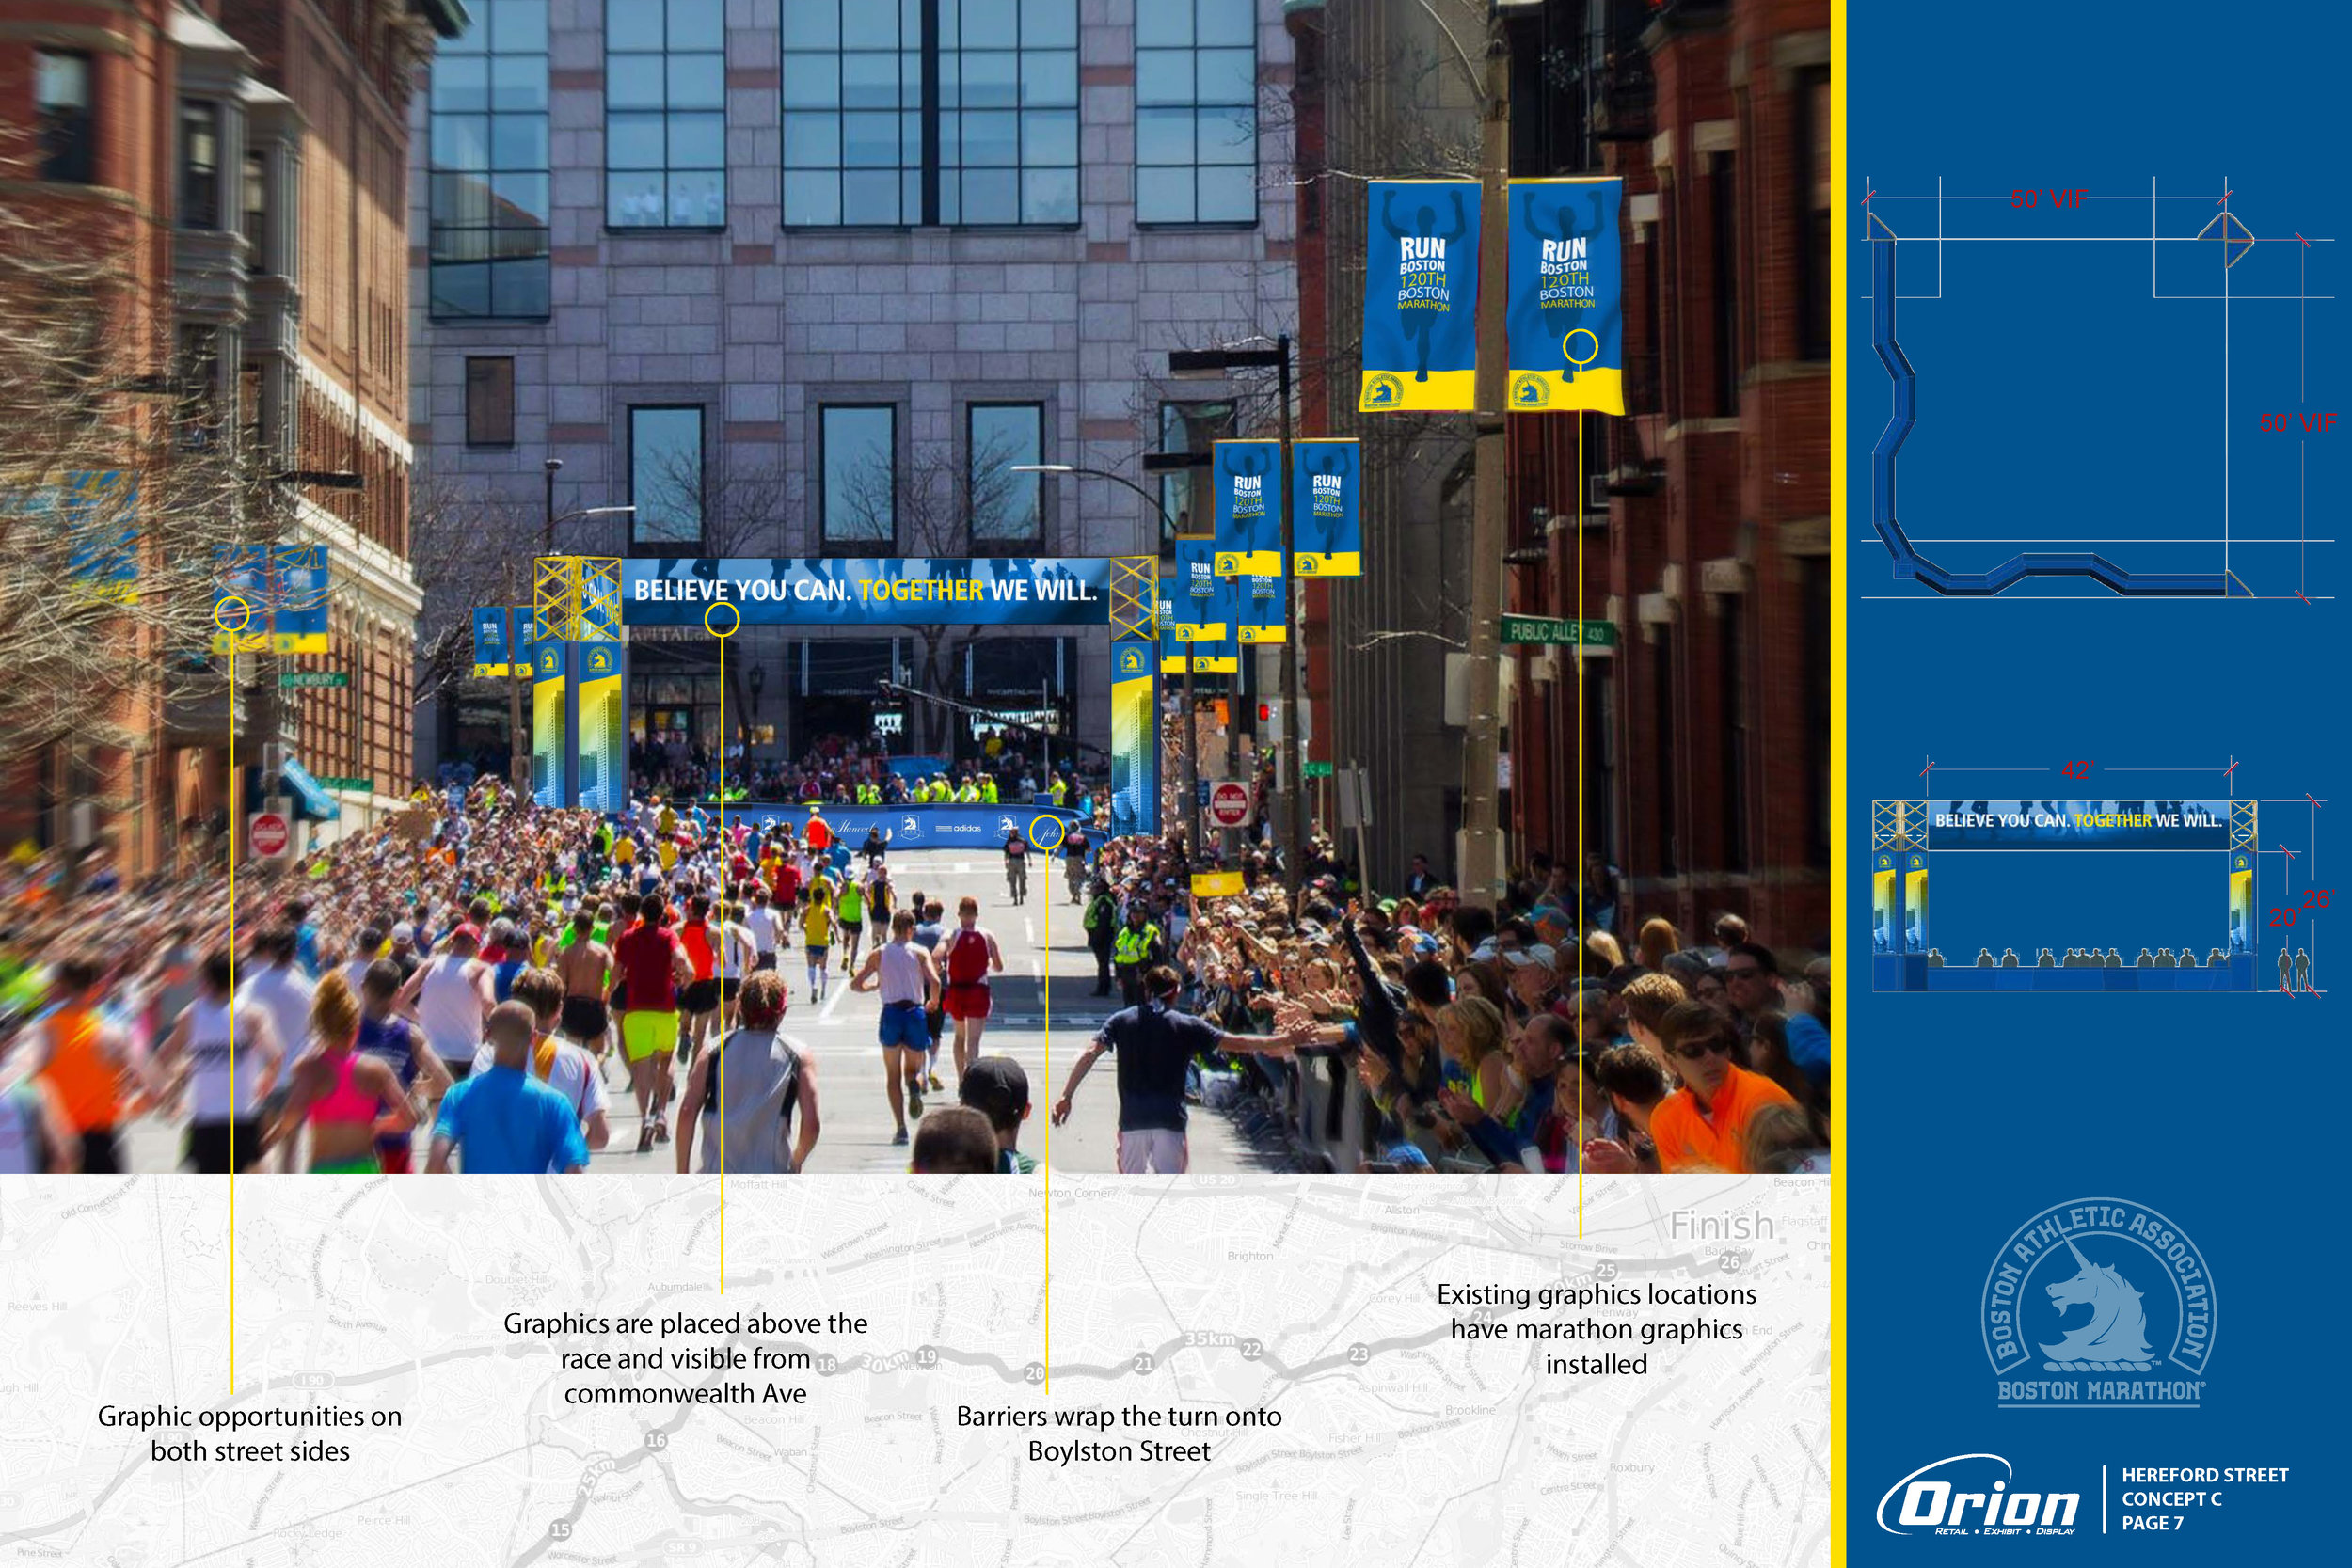 Pages from BostonMarathon%20Presentation_Concept%20C-LR_Page_6.jpg